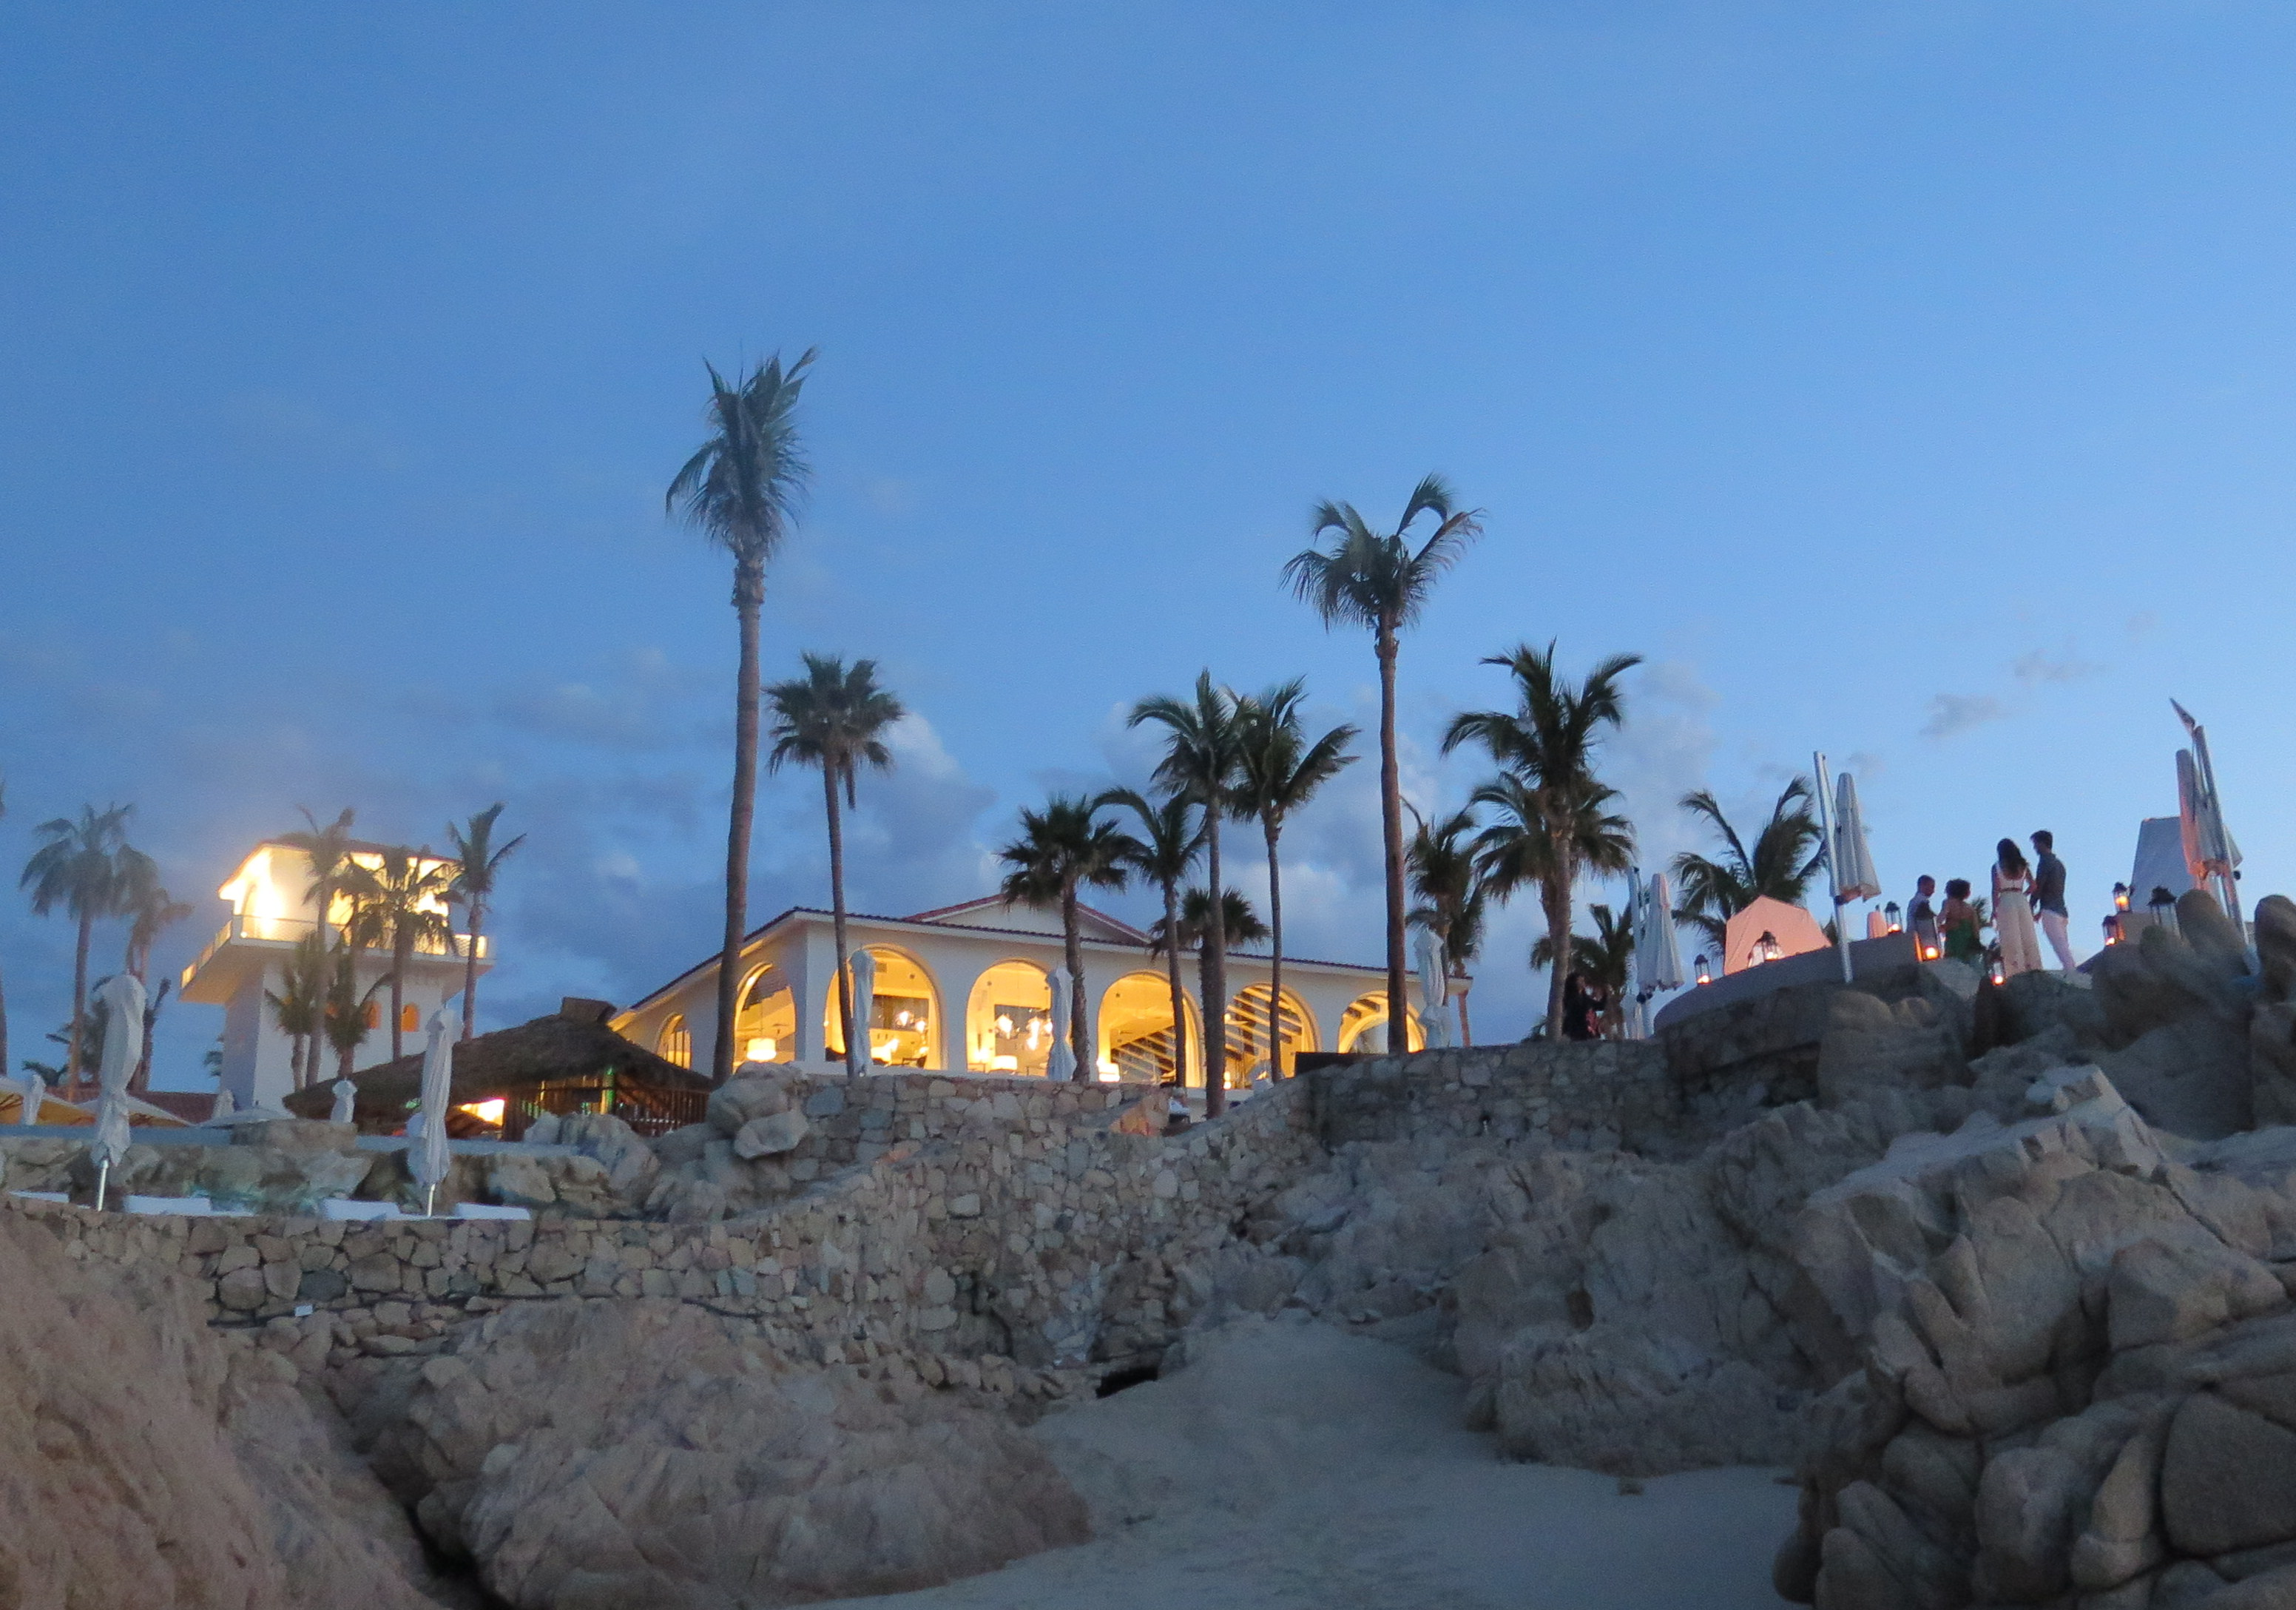 Sunset is a spectacular time to enjoy the seaside ambience at One&Only Palmilla.